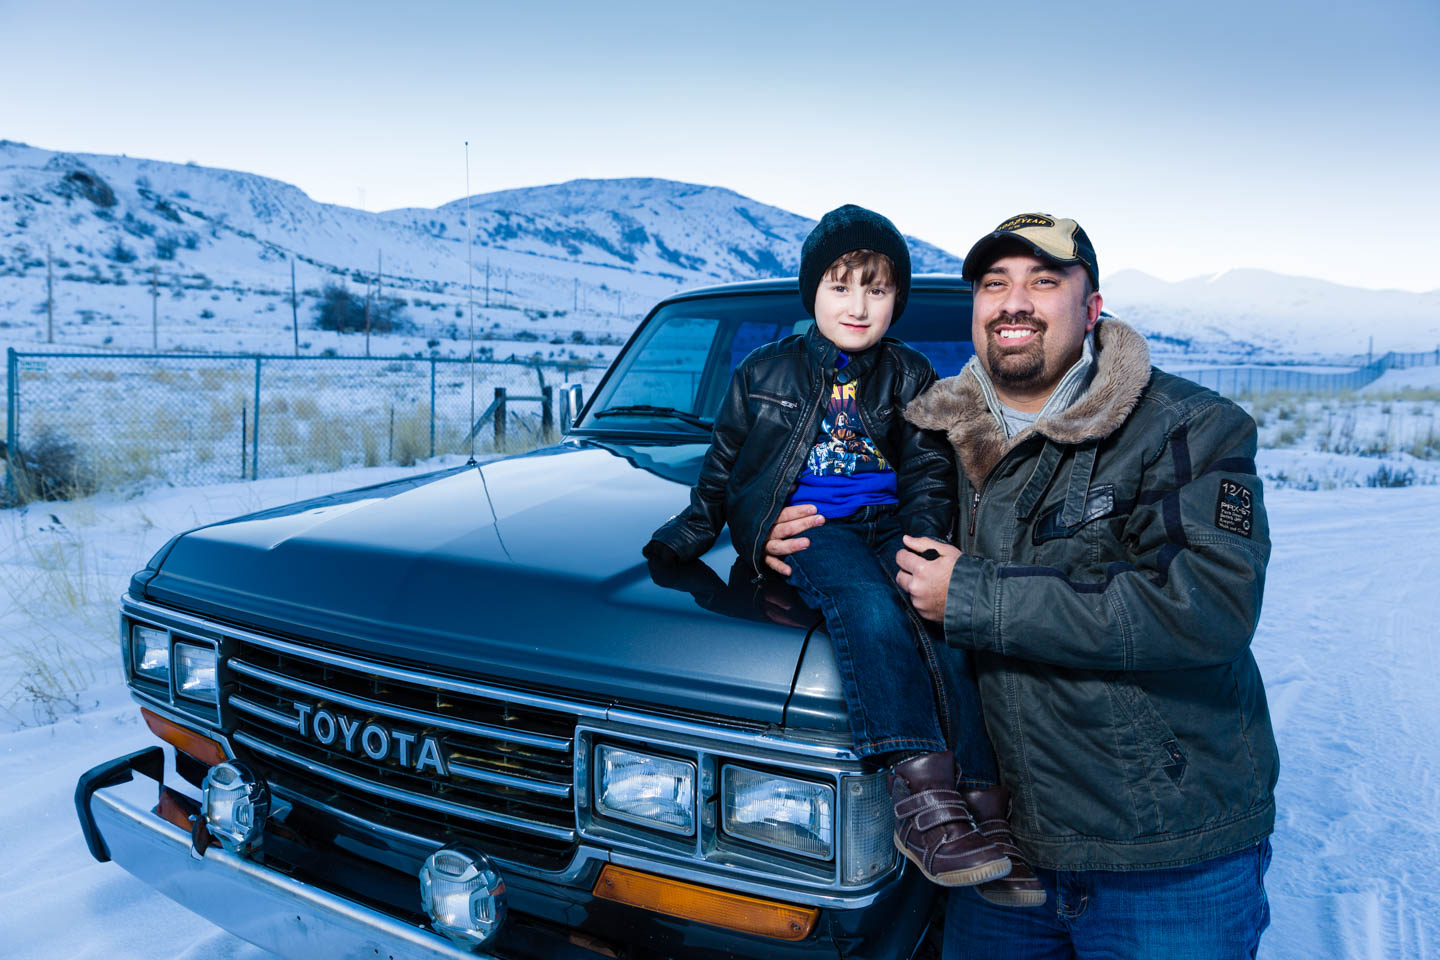 Luis poses with his son on the restored Land Cruiser